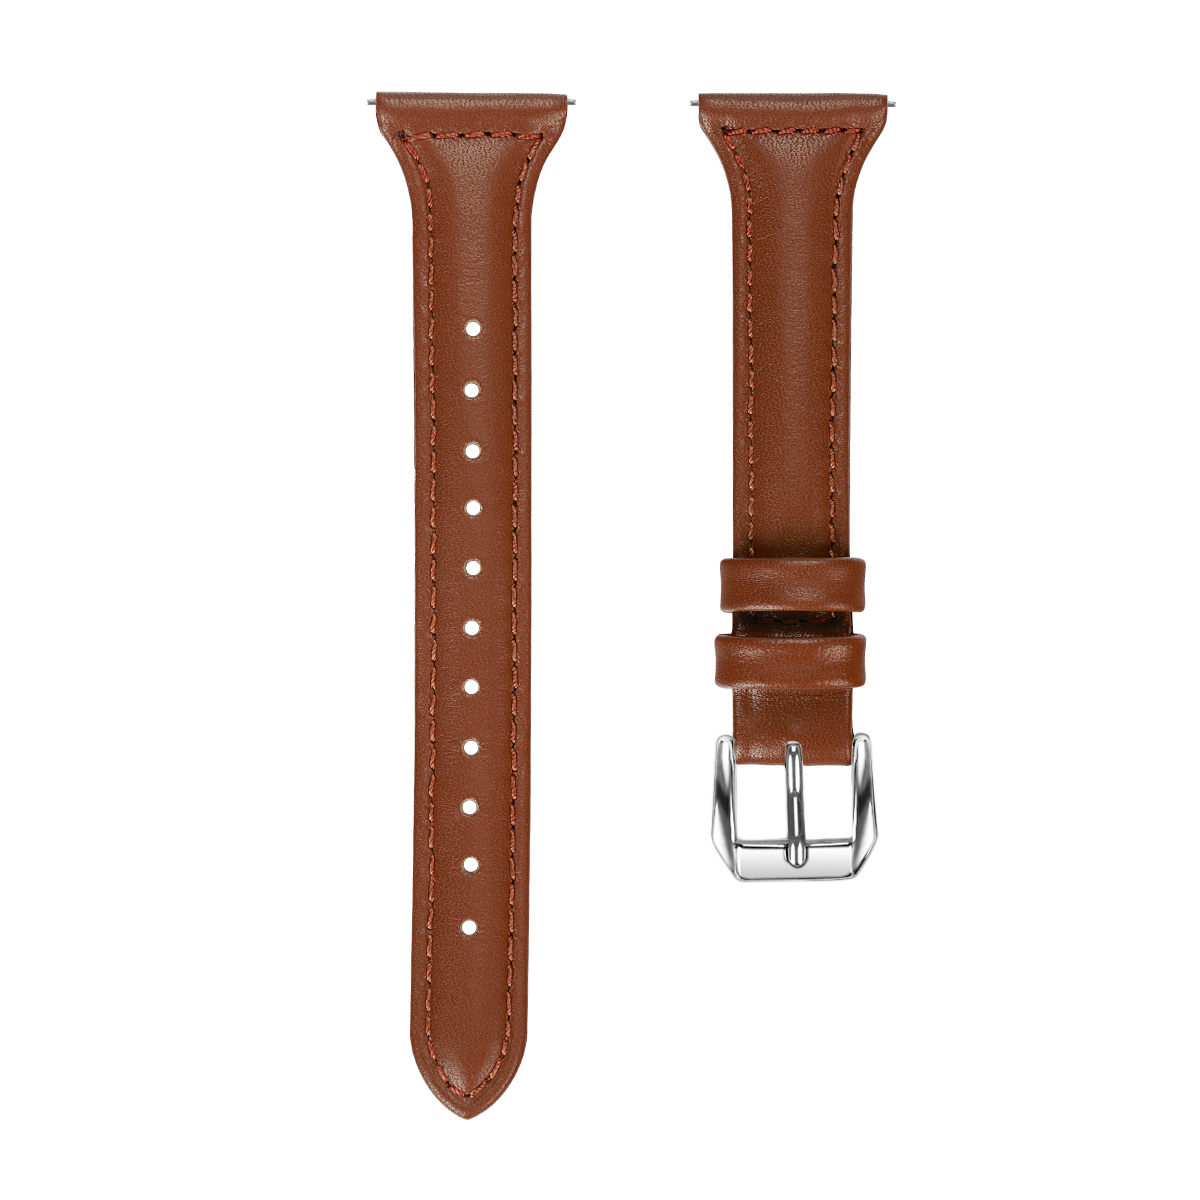 Replacement 14mm Leather Wrist Watch Band Strap For Fitbit Versa